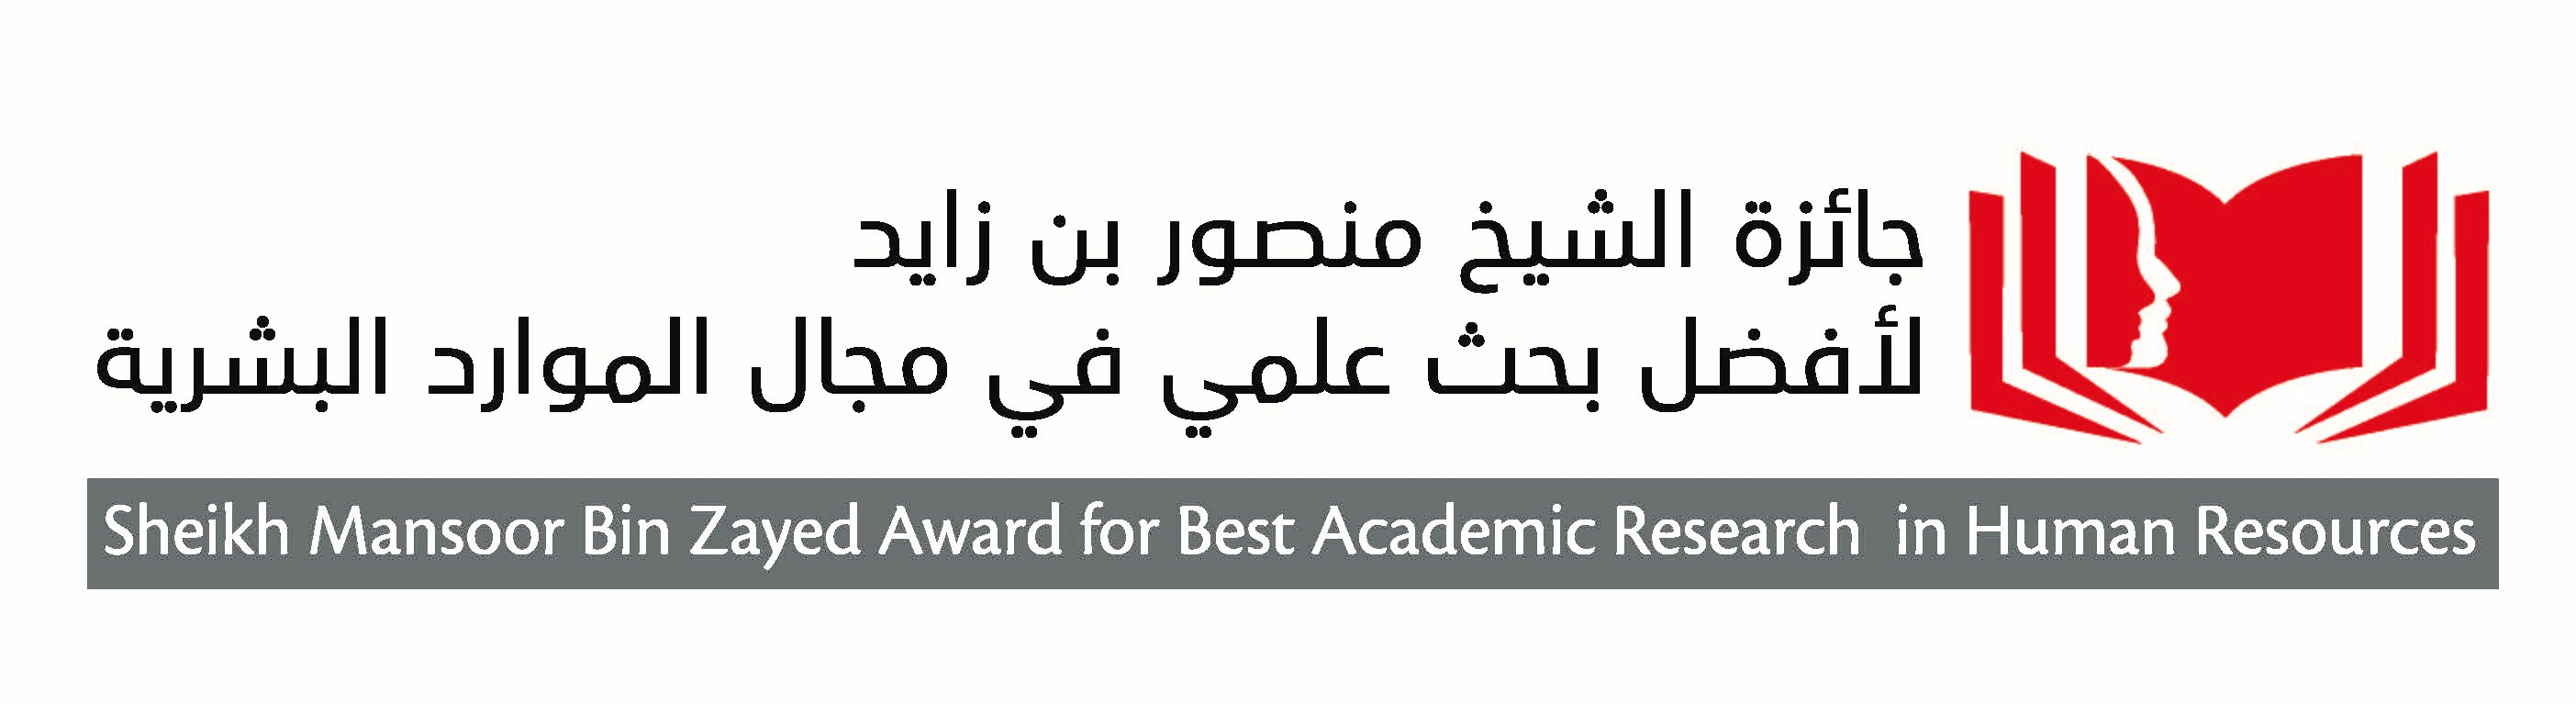 Sheikh Mansour Bin Zayed Award for Best Scientific Research in the Field of Human Resources